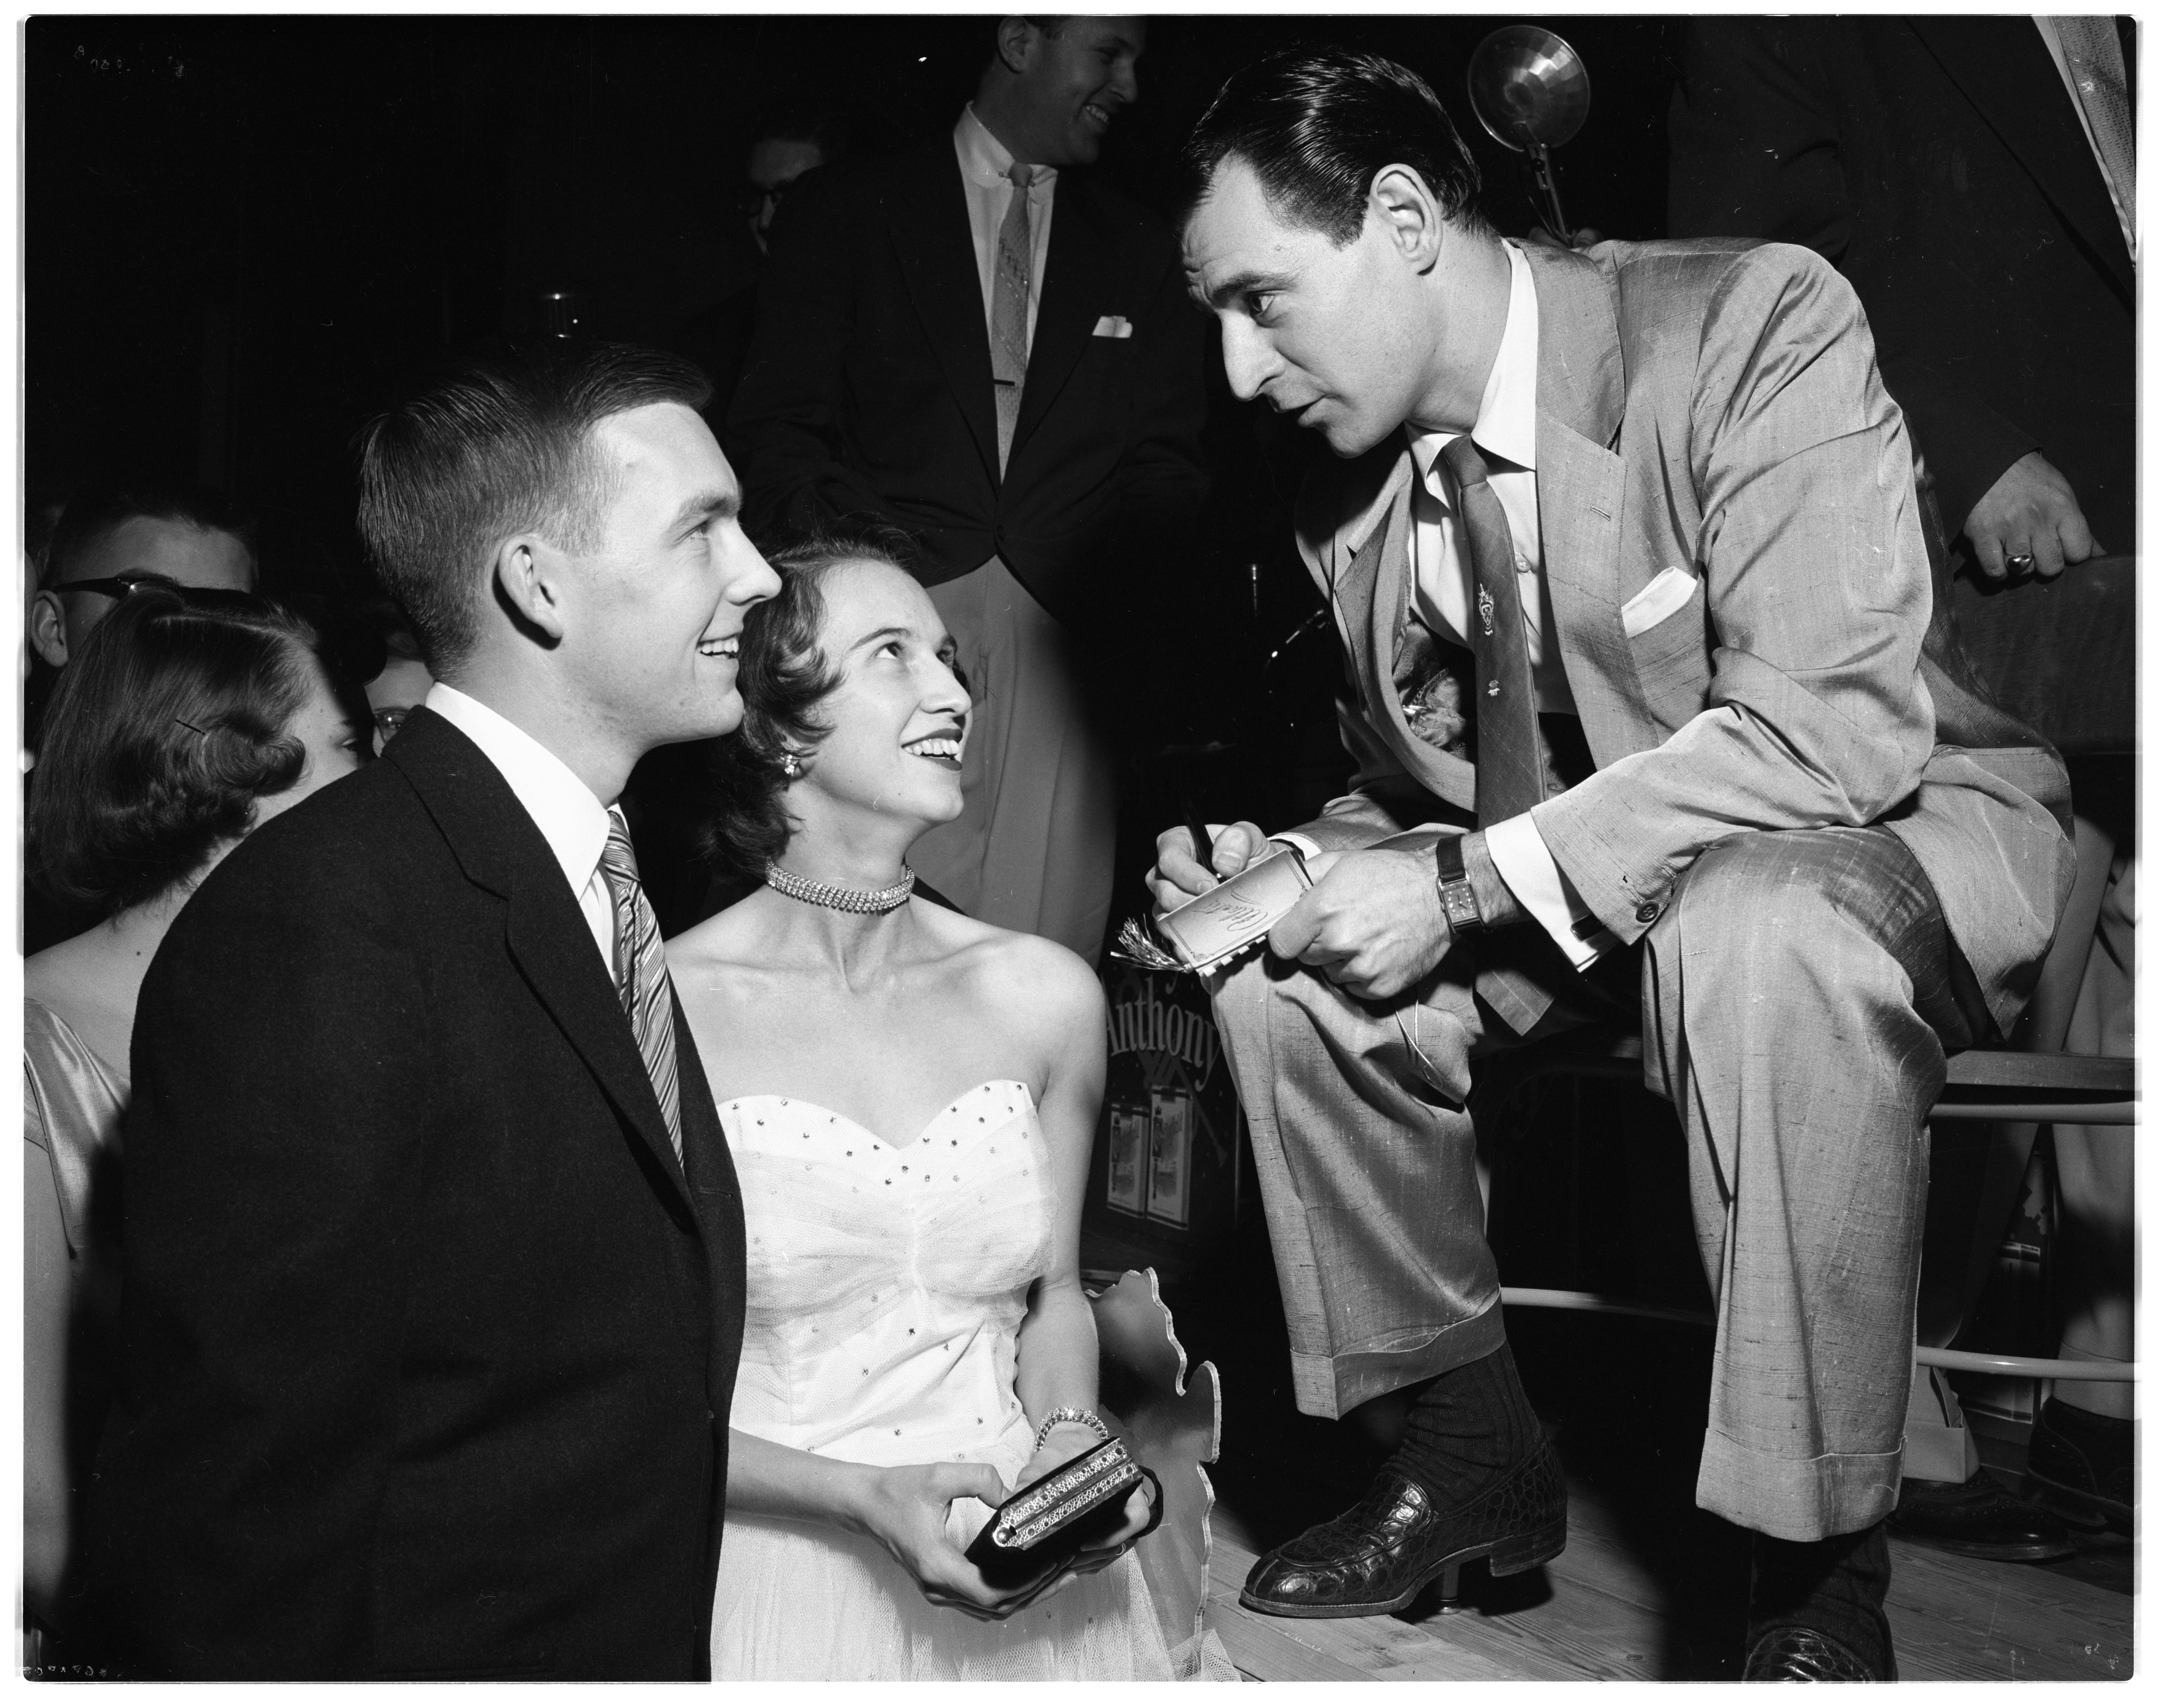 Ray Anthony, bandleader, talks to talks to Mr. and Mrs. Russell AuWerter II at the J-Hop, February 5, 1954 image